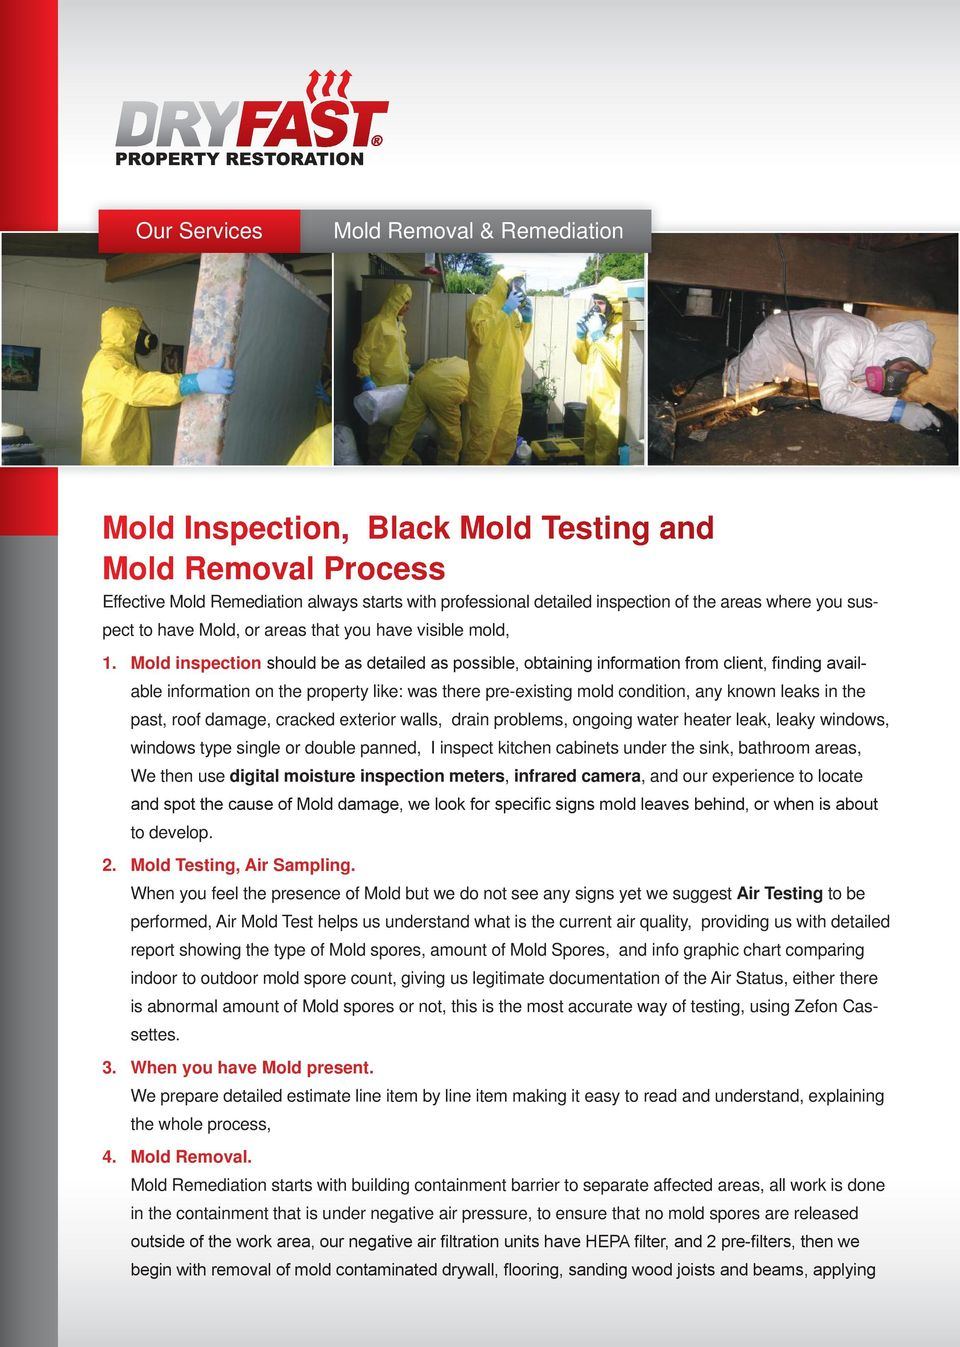 Mold inspection should be as detailed as possible, obtaining information from client, finding available information on the property like: was there pre-existing mold condition, any known leaks in the